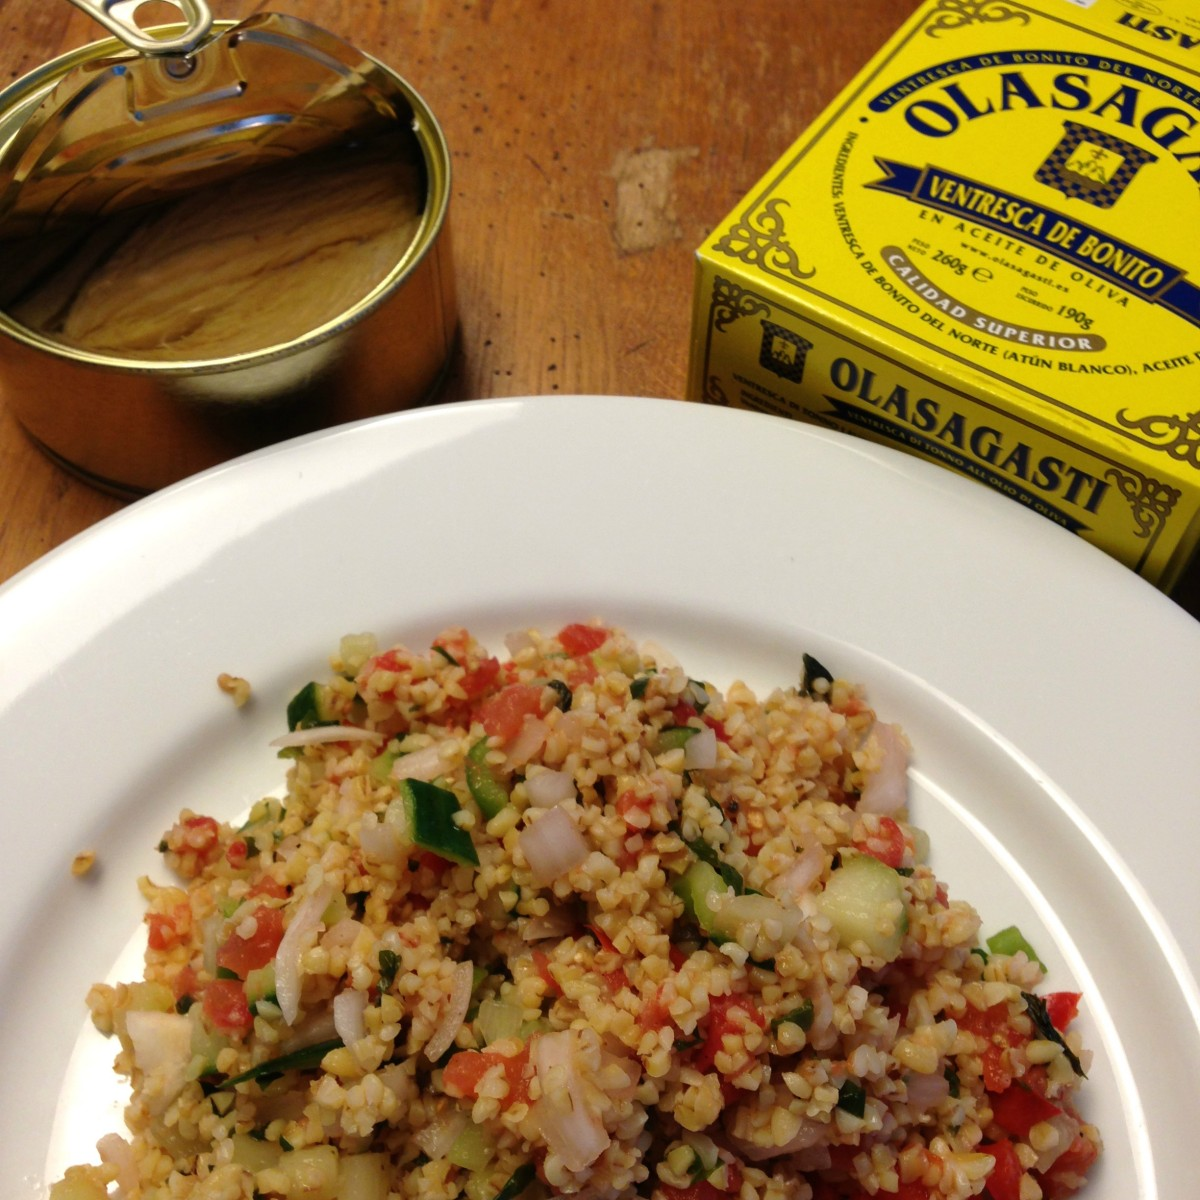 conservas-olasagasti-recipes-canned-fish-high-quality-tuna-belly-fillets-recipe-tabouleh